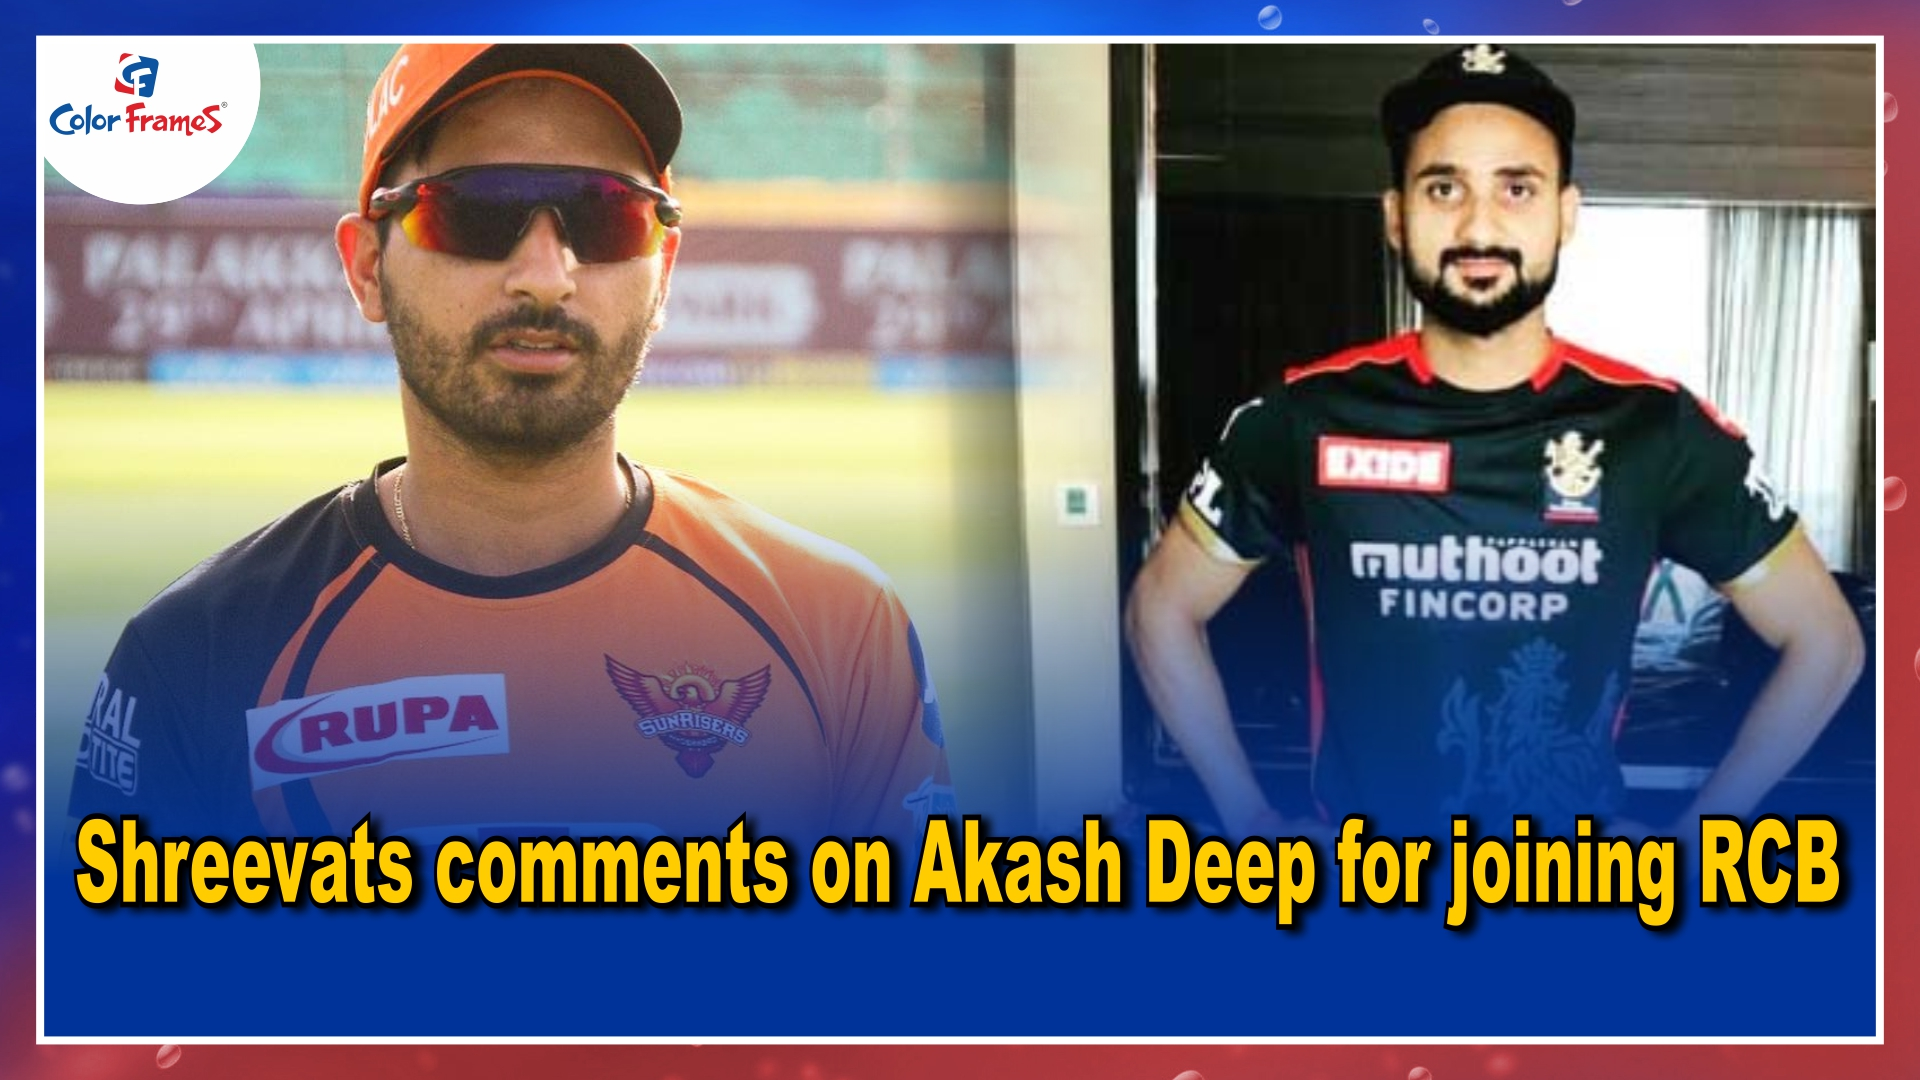 Shreevats comments on Akash Deep for joining RCB